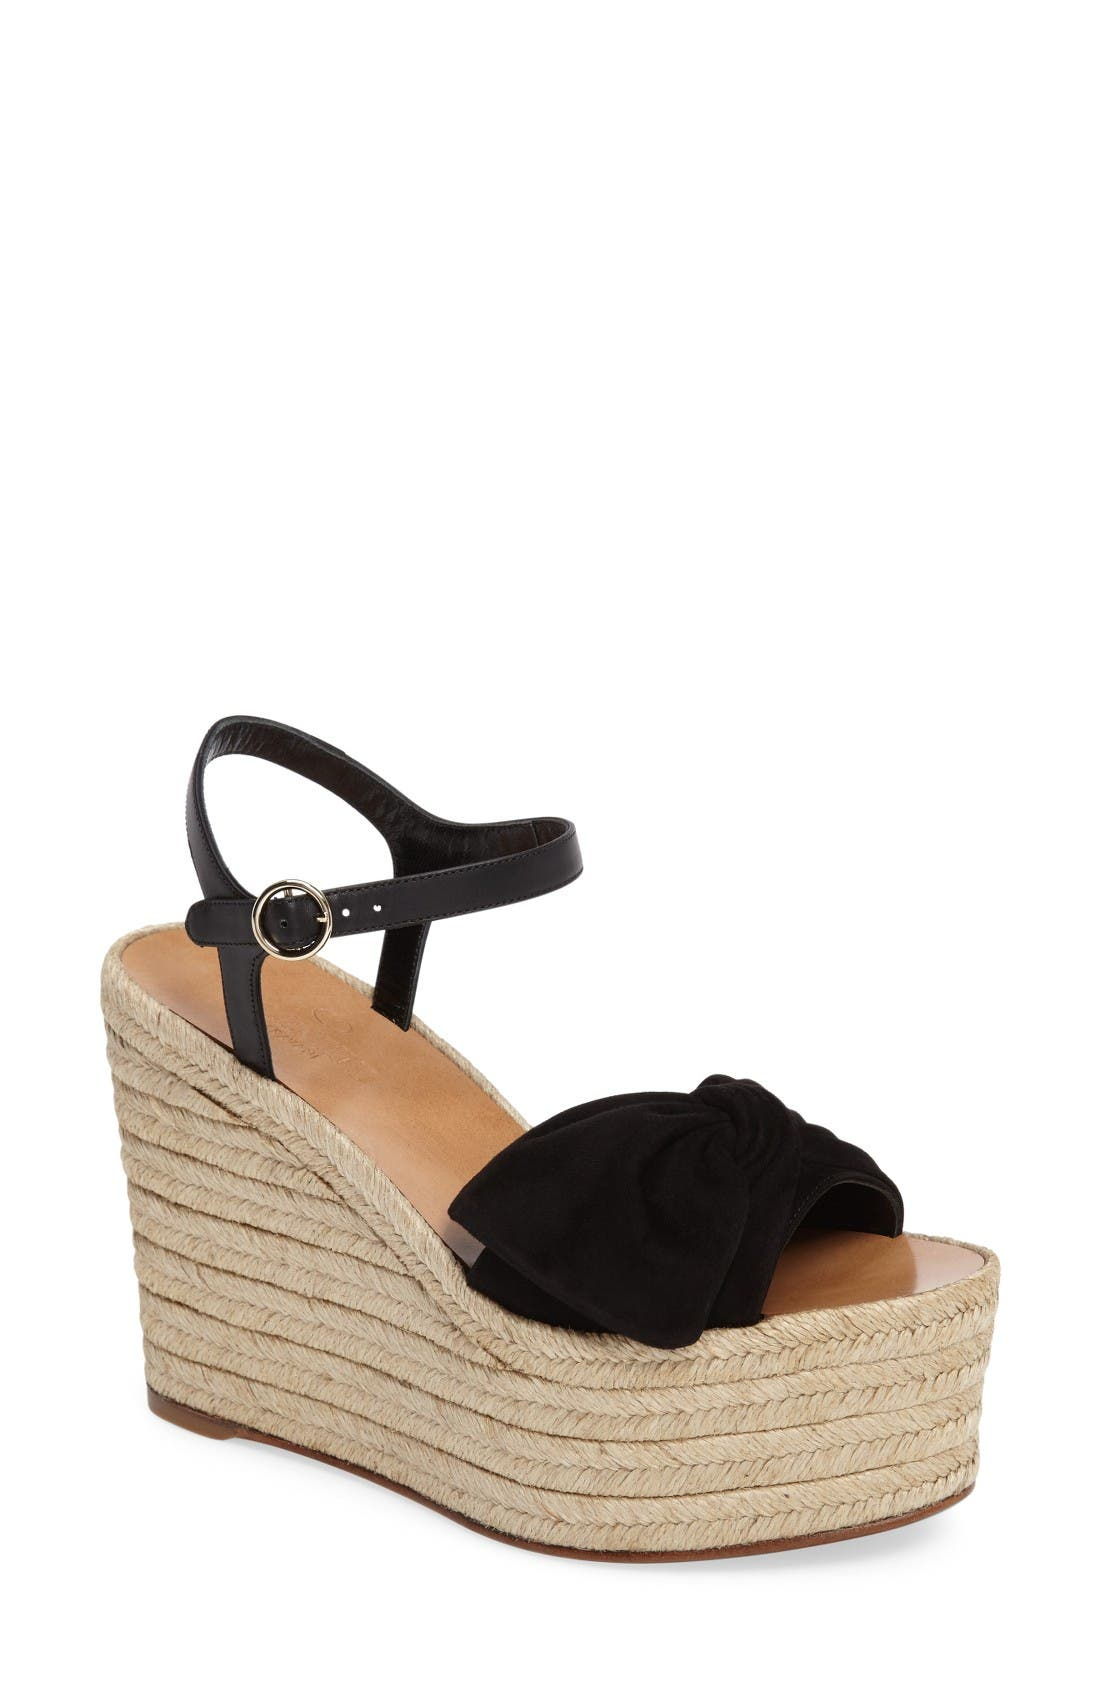 VALENTINO 'Bow' Espadrille Wedge Sandal